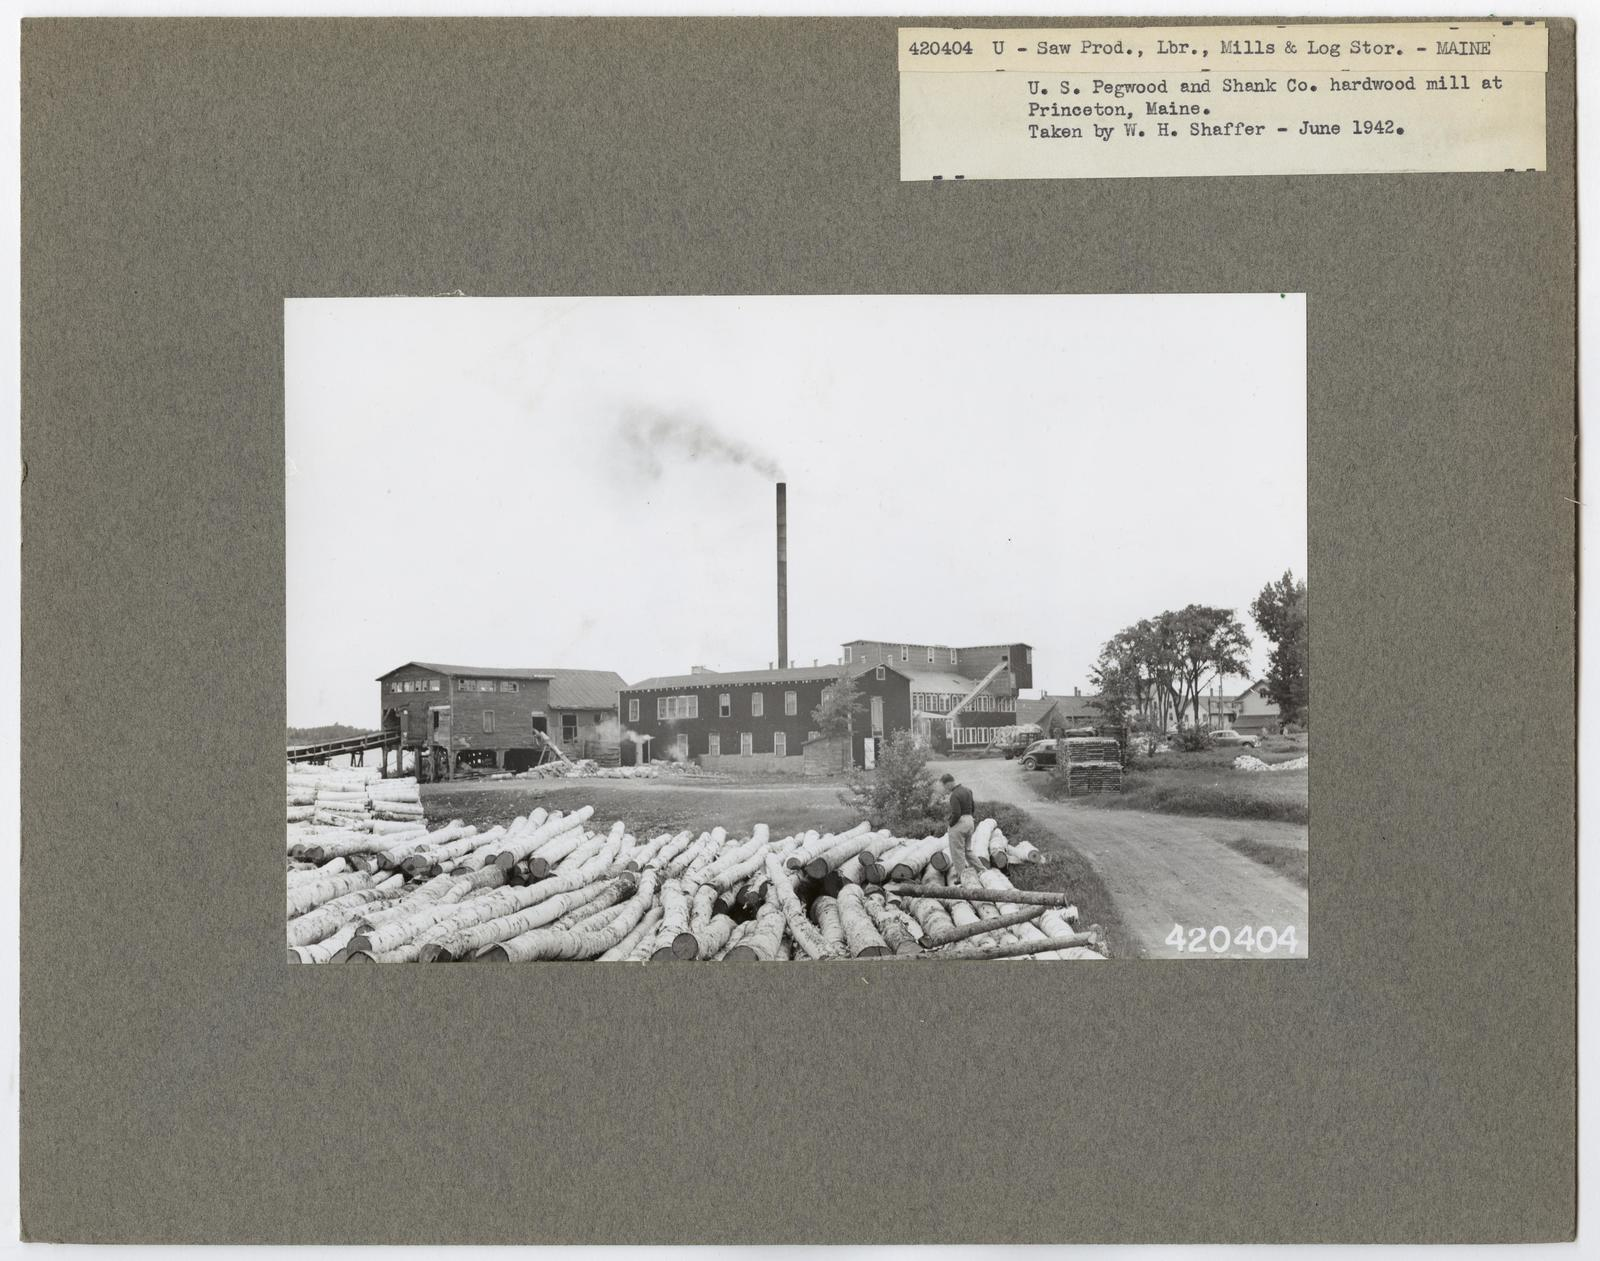 Mills, Milling and Log Storage - Maine